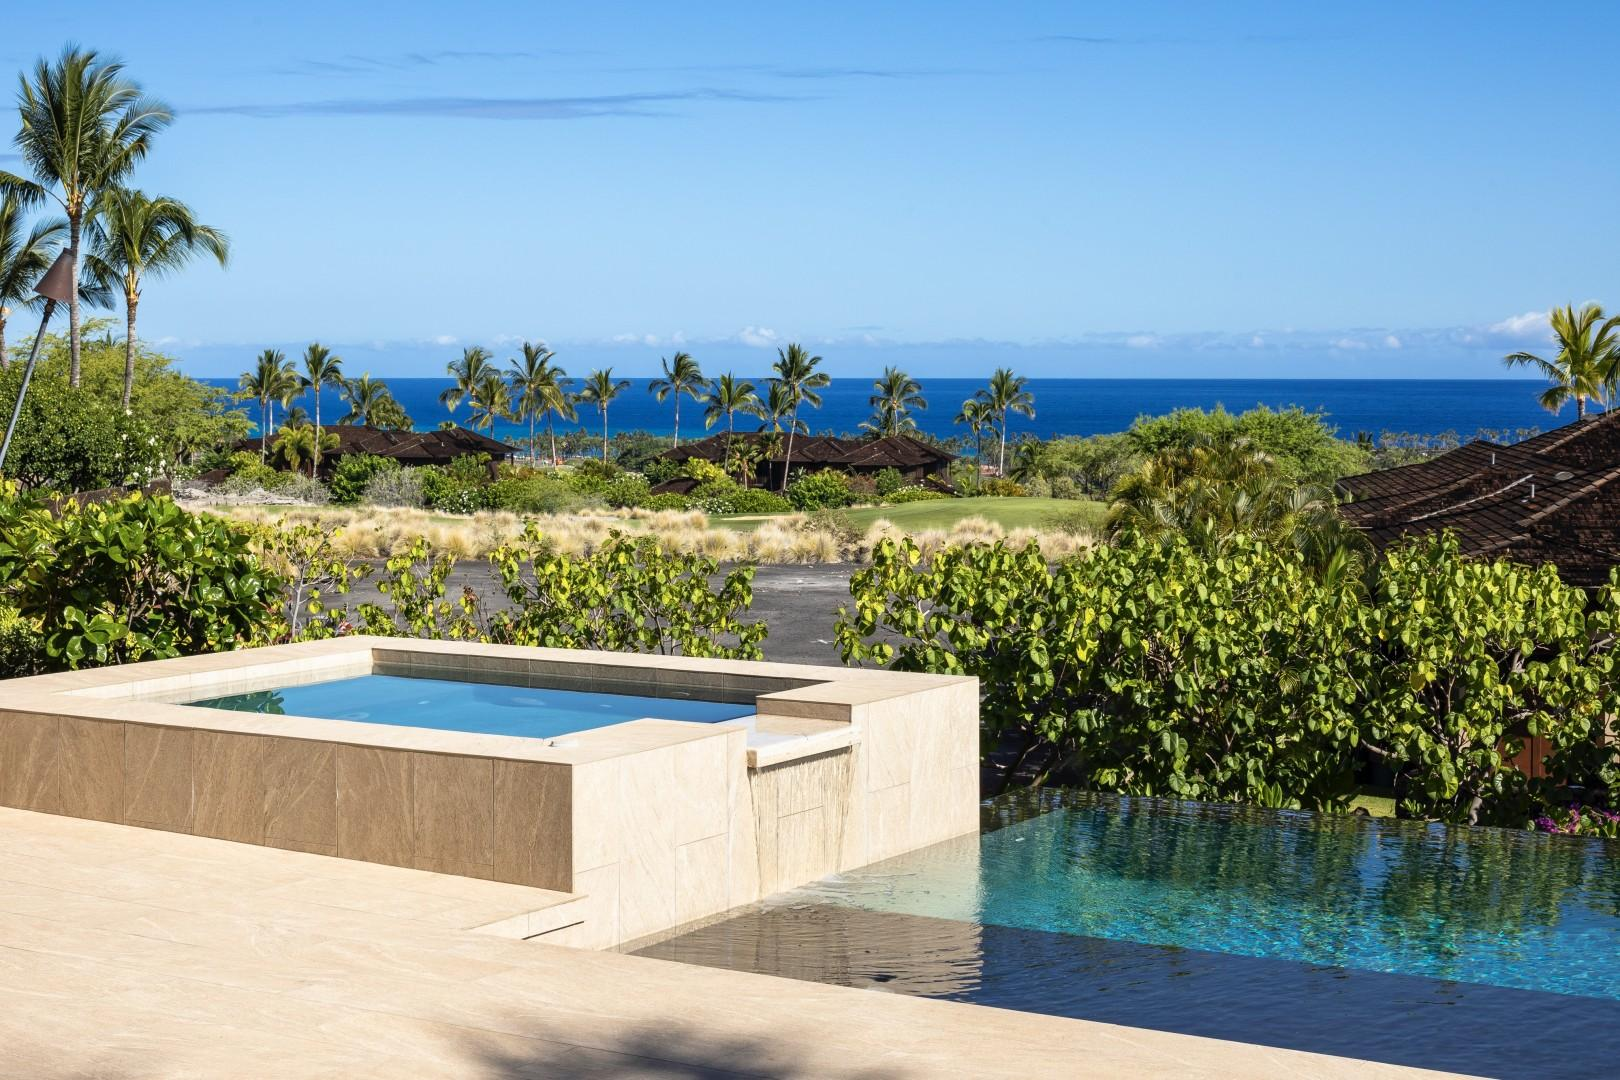 Contemporary design elements delight the senses, like this overflow waterfall from private spa to infinity pool.